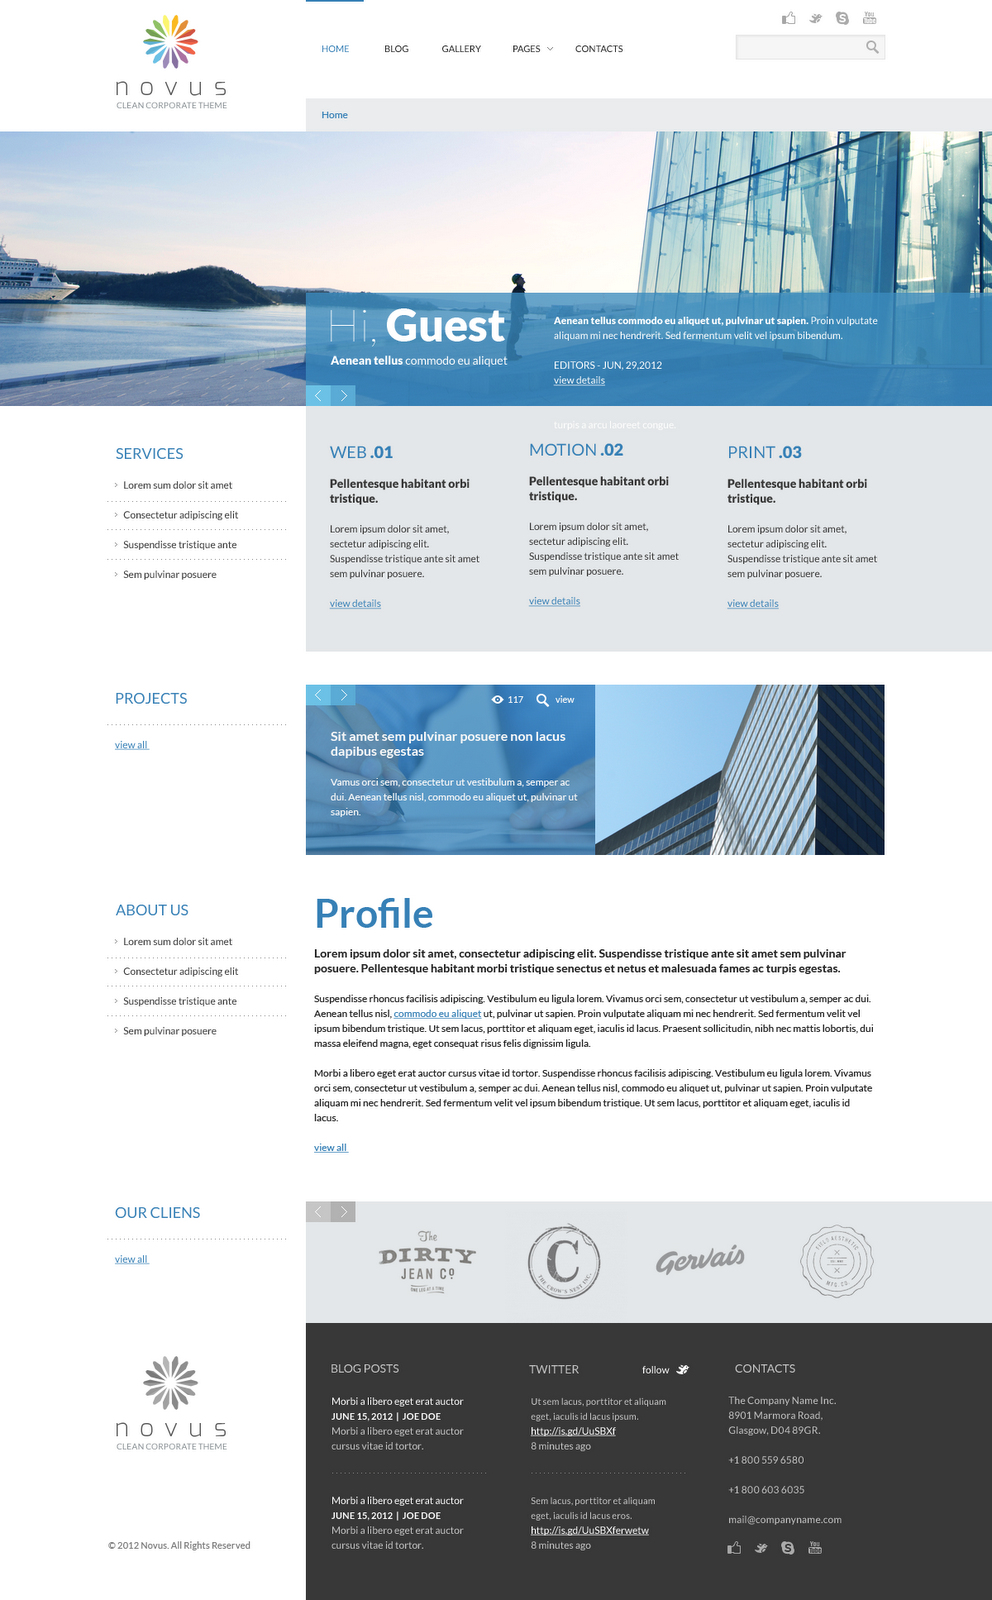 Novus-Multipurpose-Corporate-Premium-Wordpress-Template